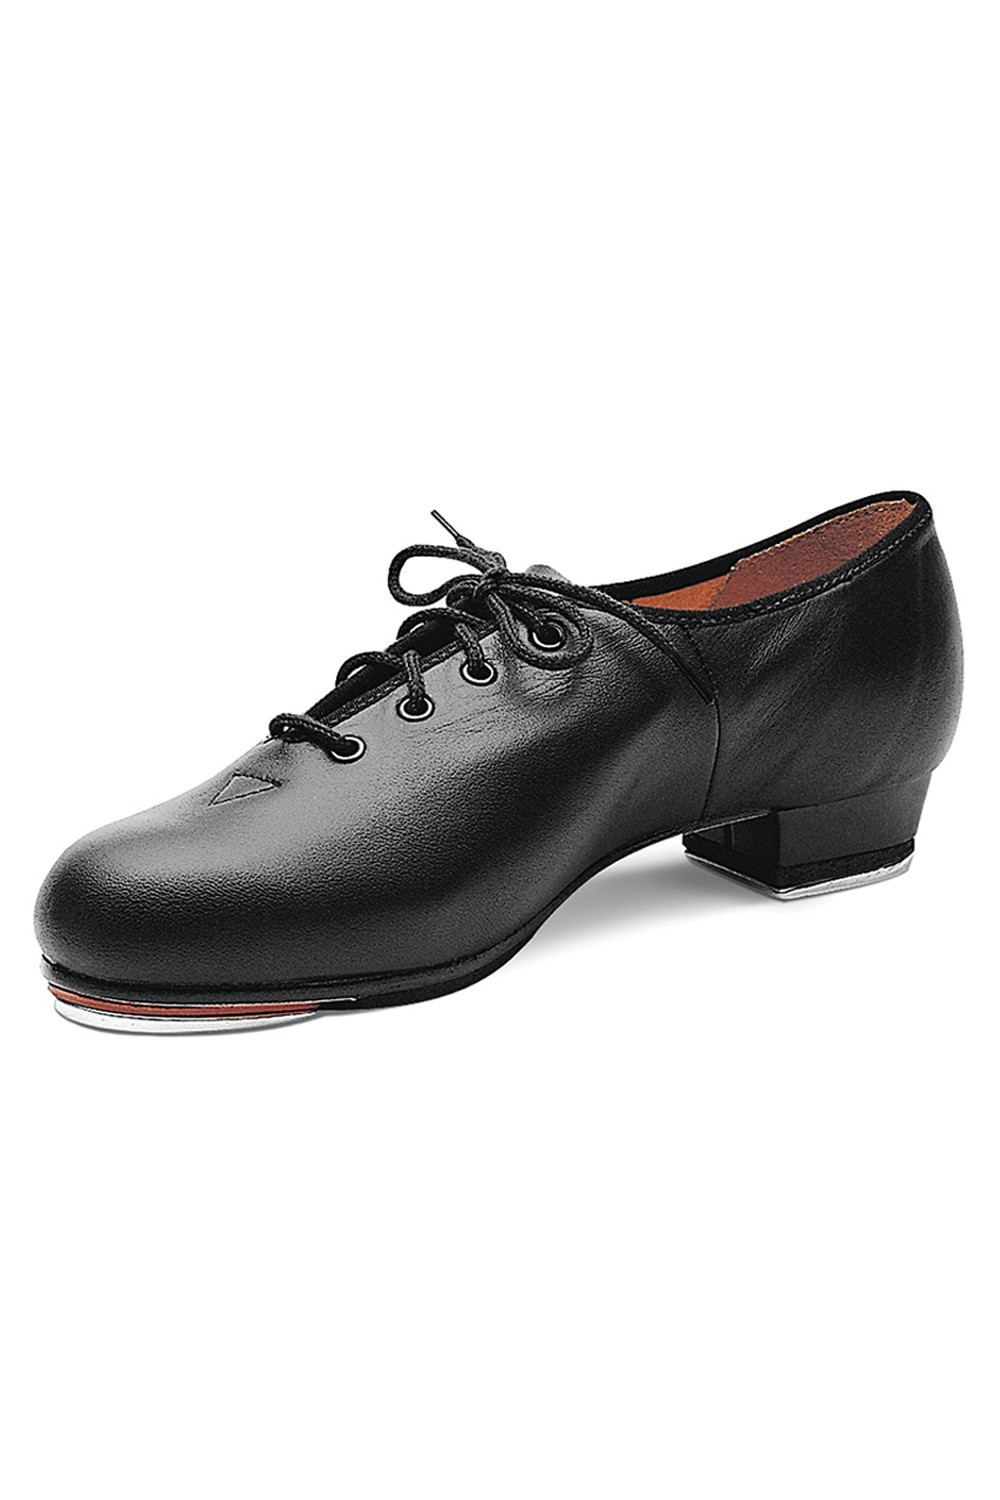 Jazz Steppschuh Women's Tap Shoes